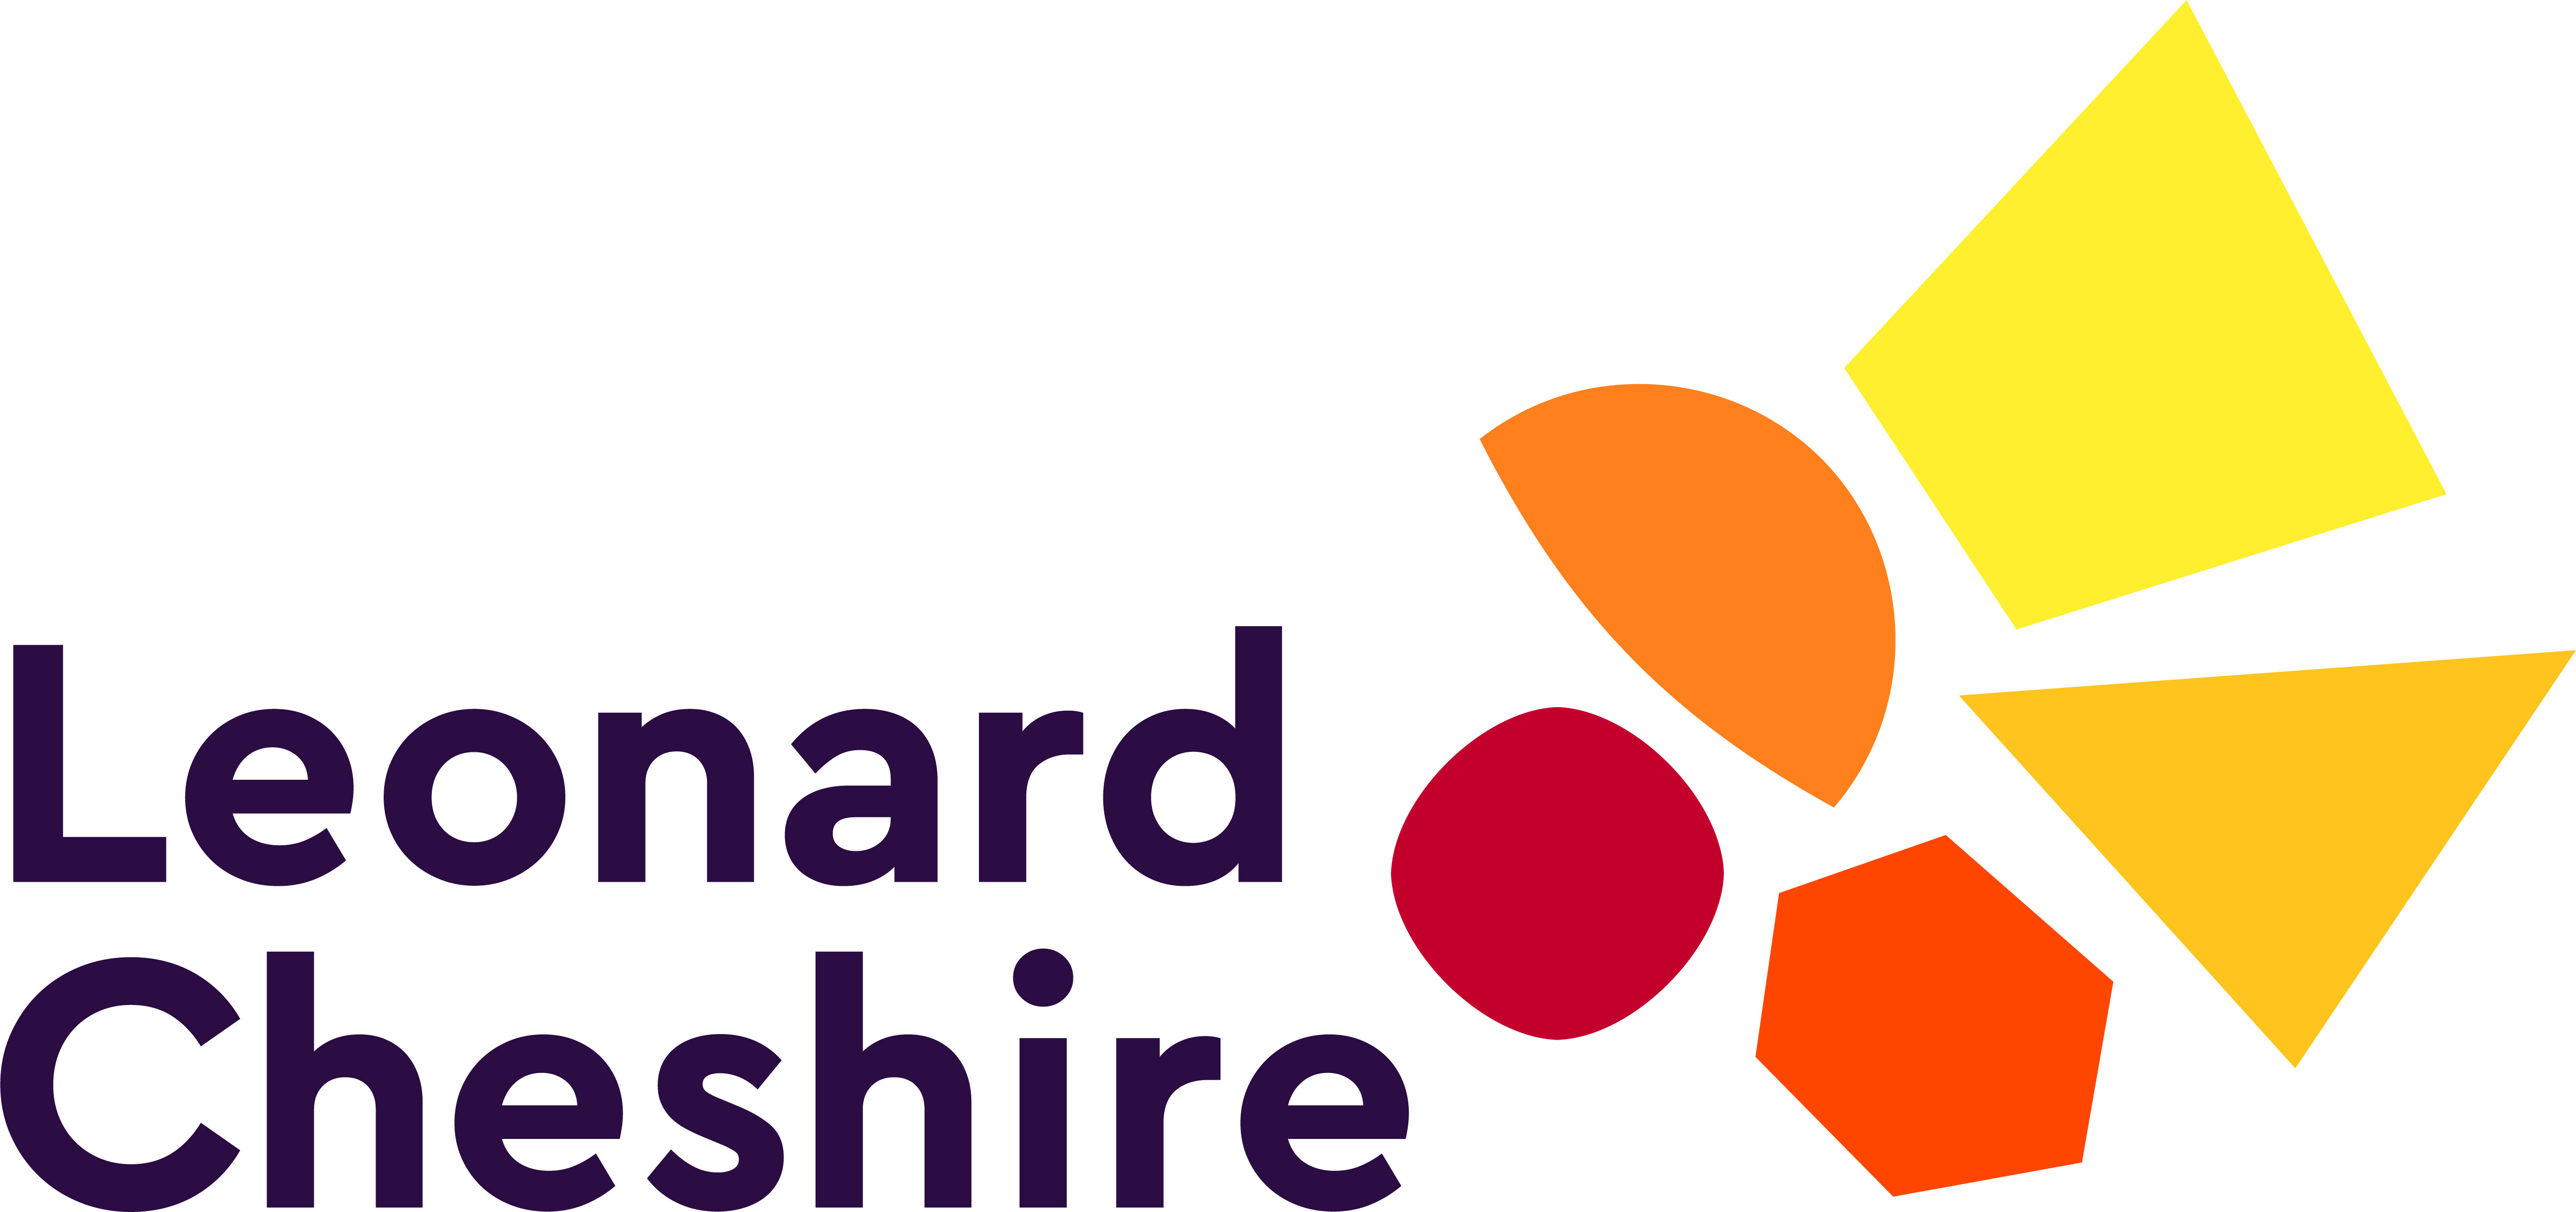 Leonard Cheshire Disability's logo takes you to their list of jobs